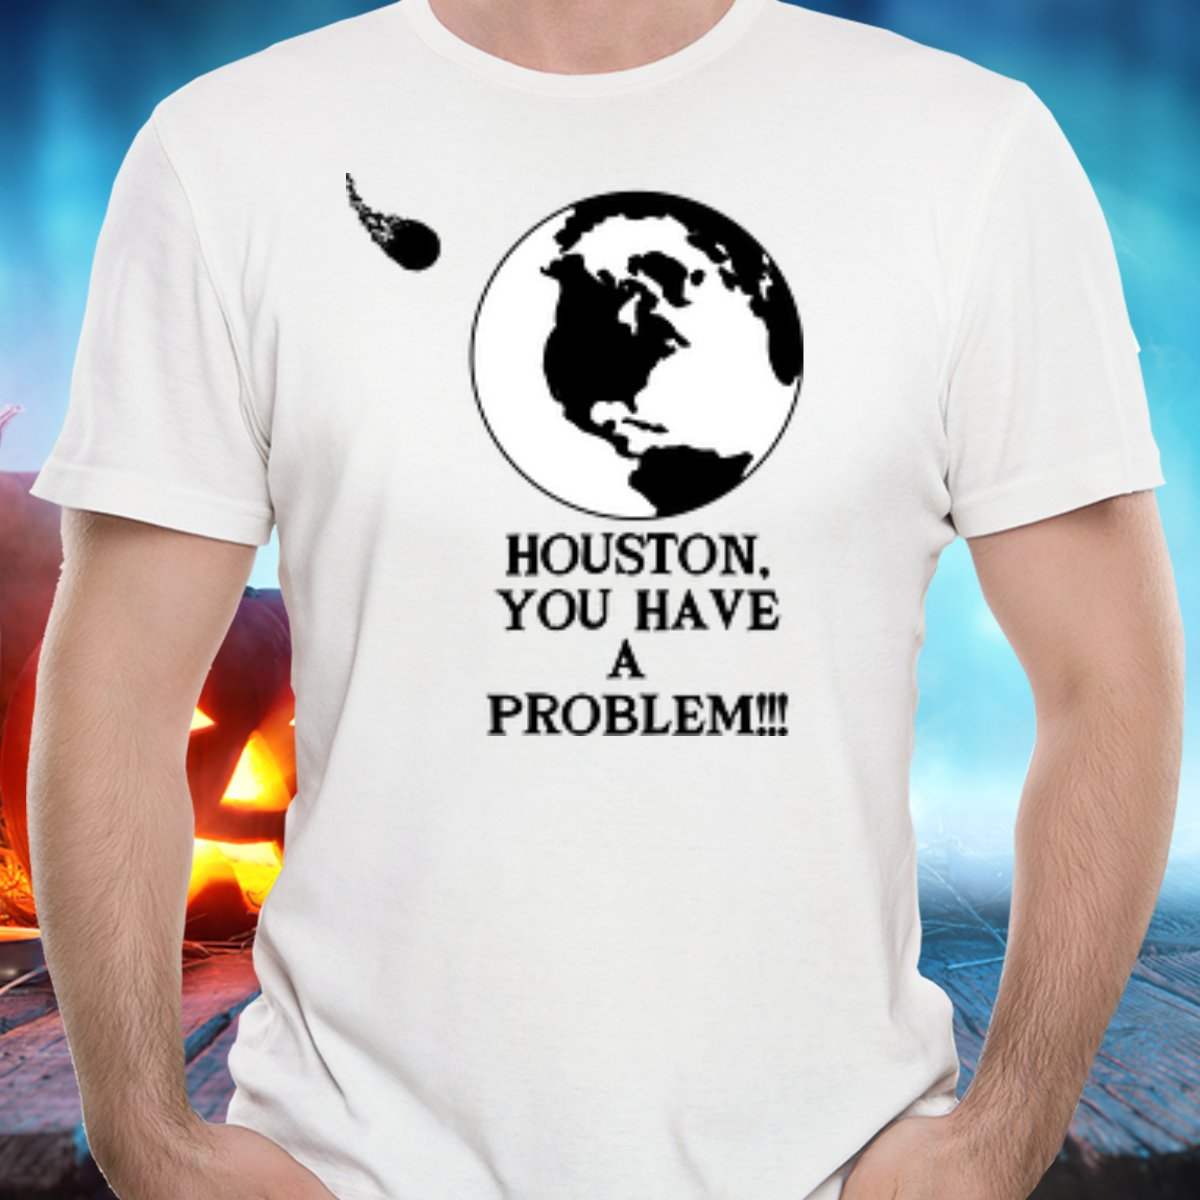 Huston, You Have A Problem - T-Shirt - FREE Shipping!